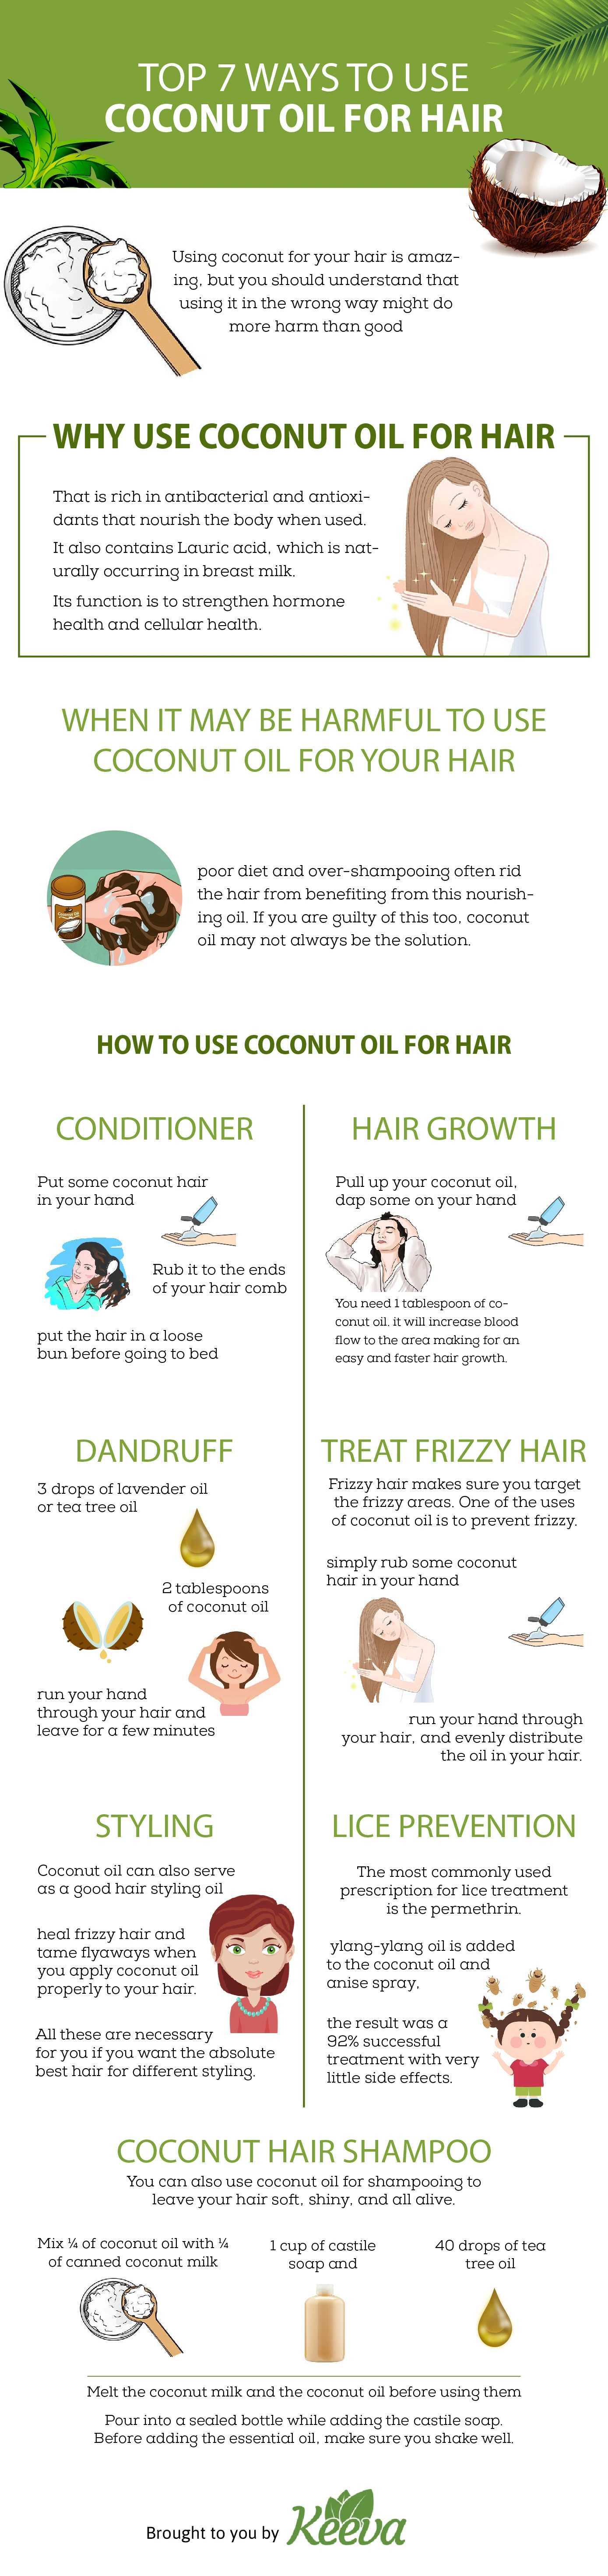 Top 7 Ways To Use Coconut Oil For Hair